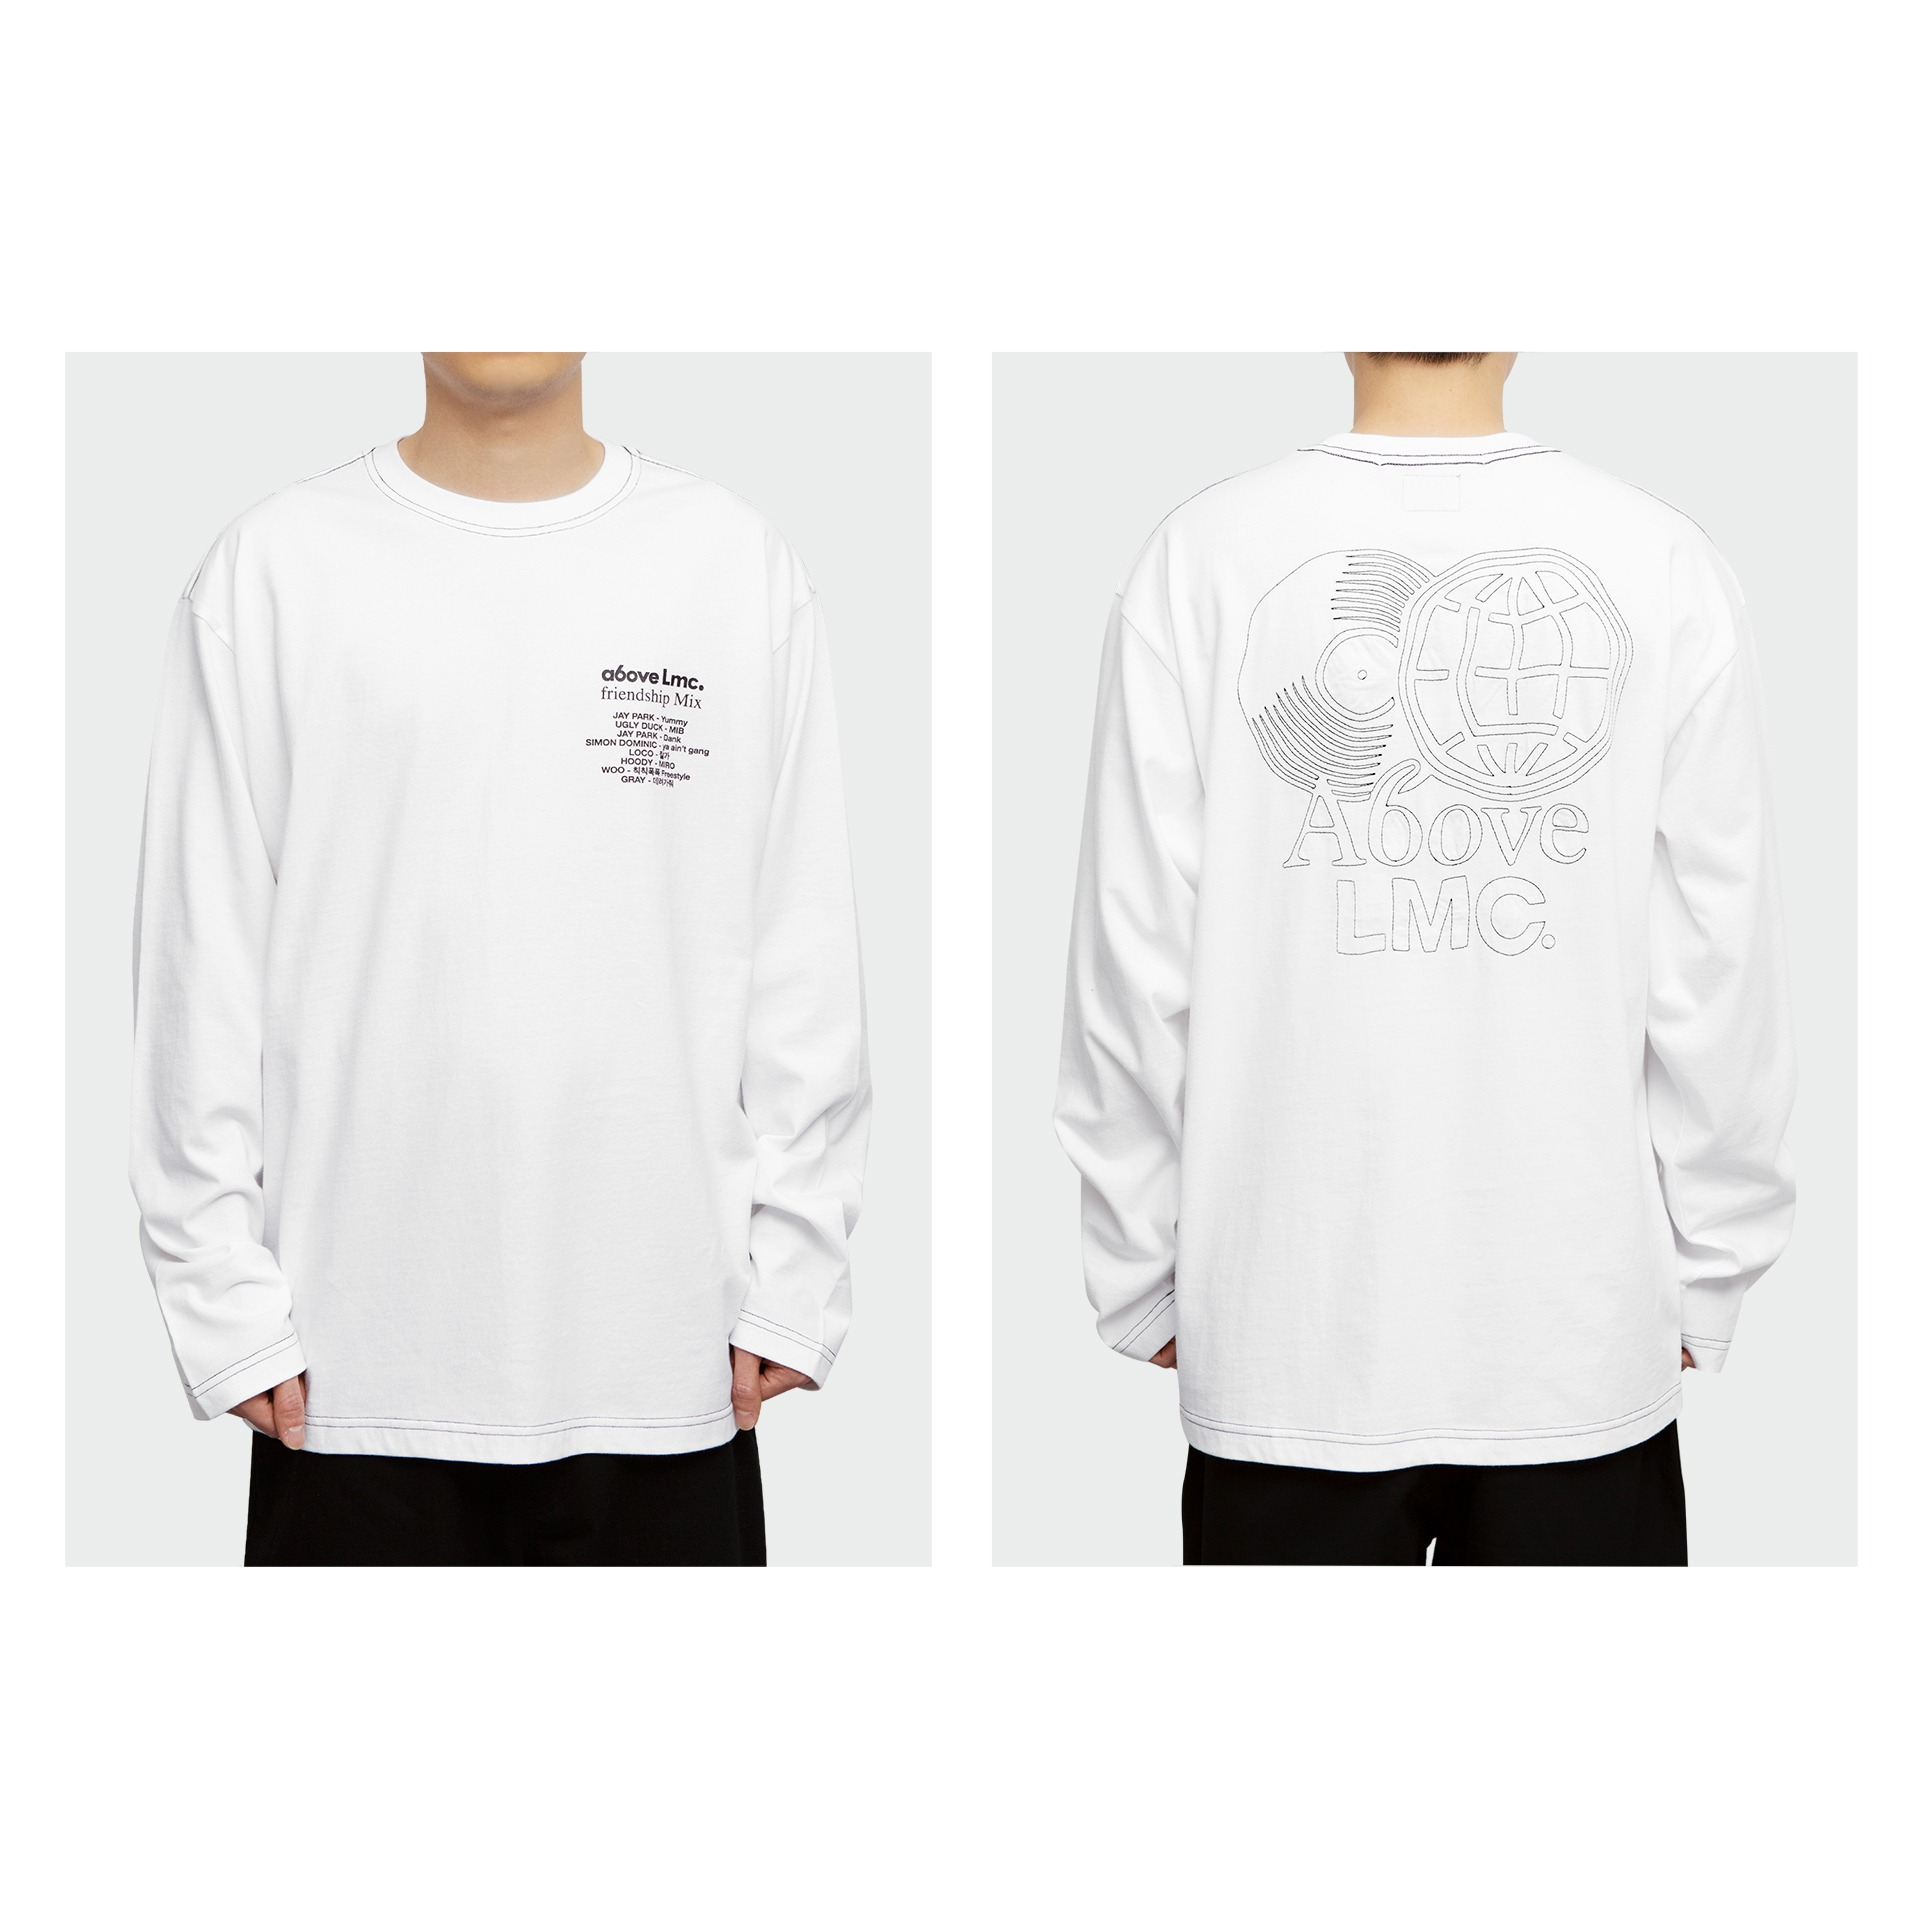 layer-LMC X A6OVE FRIENDSHIP MIX LONG SLV TEE white♡韓國男裝上衣